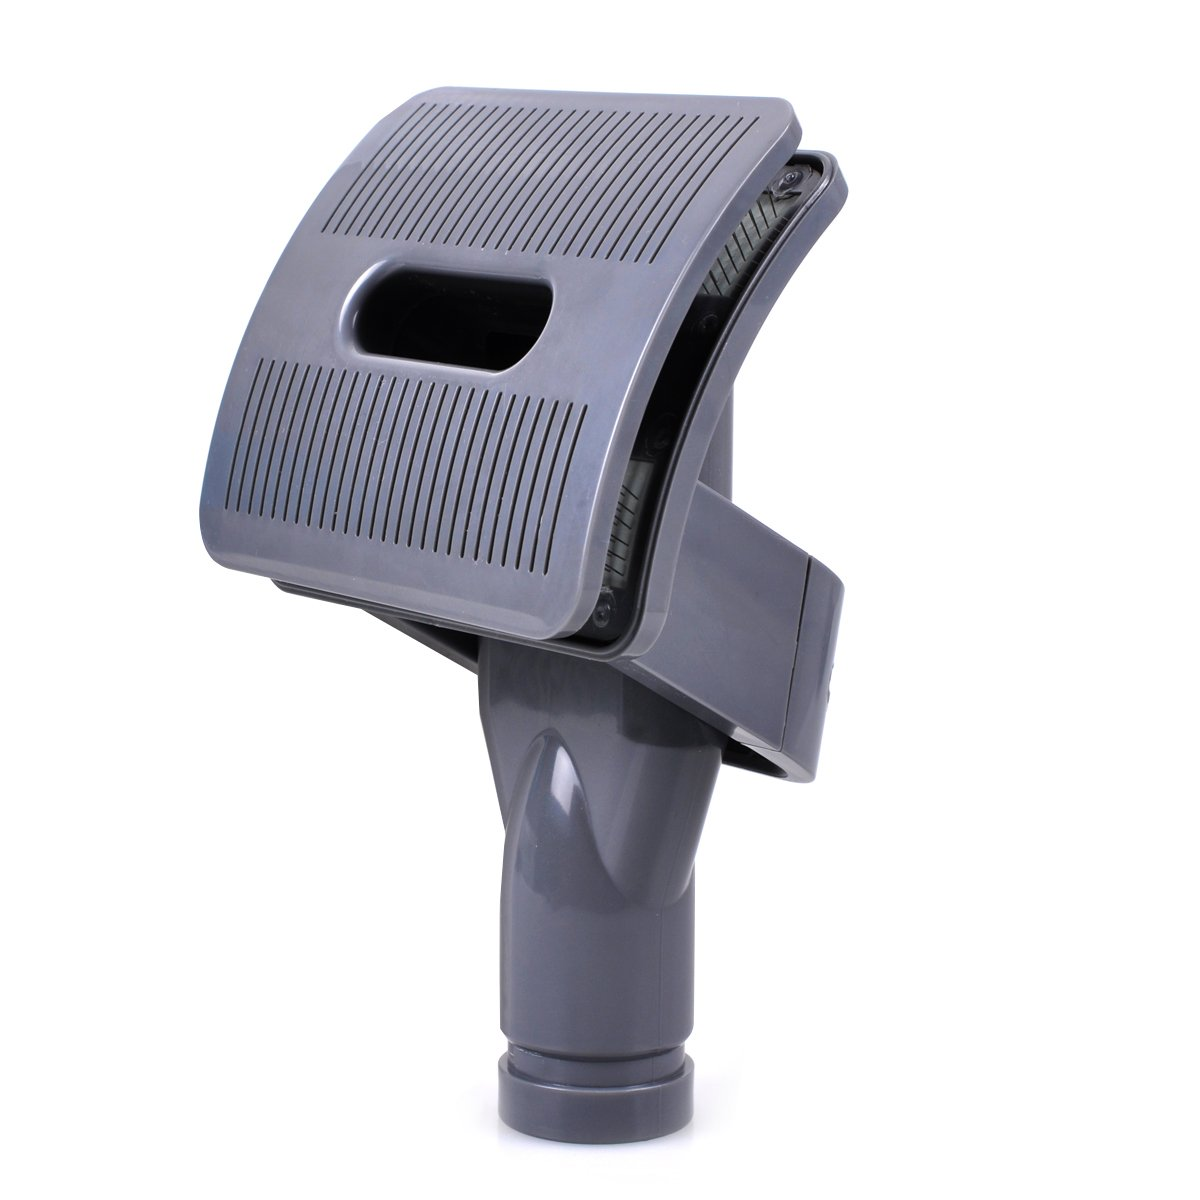 KEEPOW Groom Tool Dog Pet Attachment Brush for Dyson V6 DC24 DC25 DC35 DC41 DC62 DC65 Vacuum Cleaner